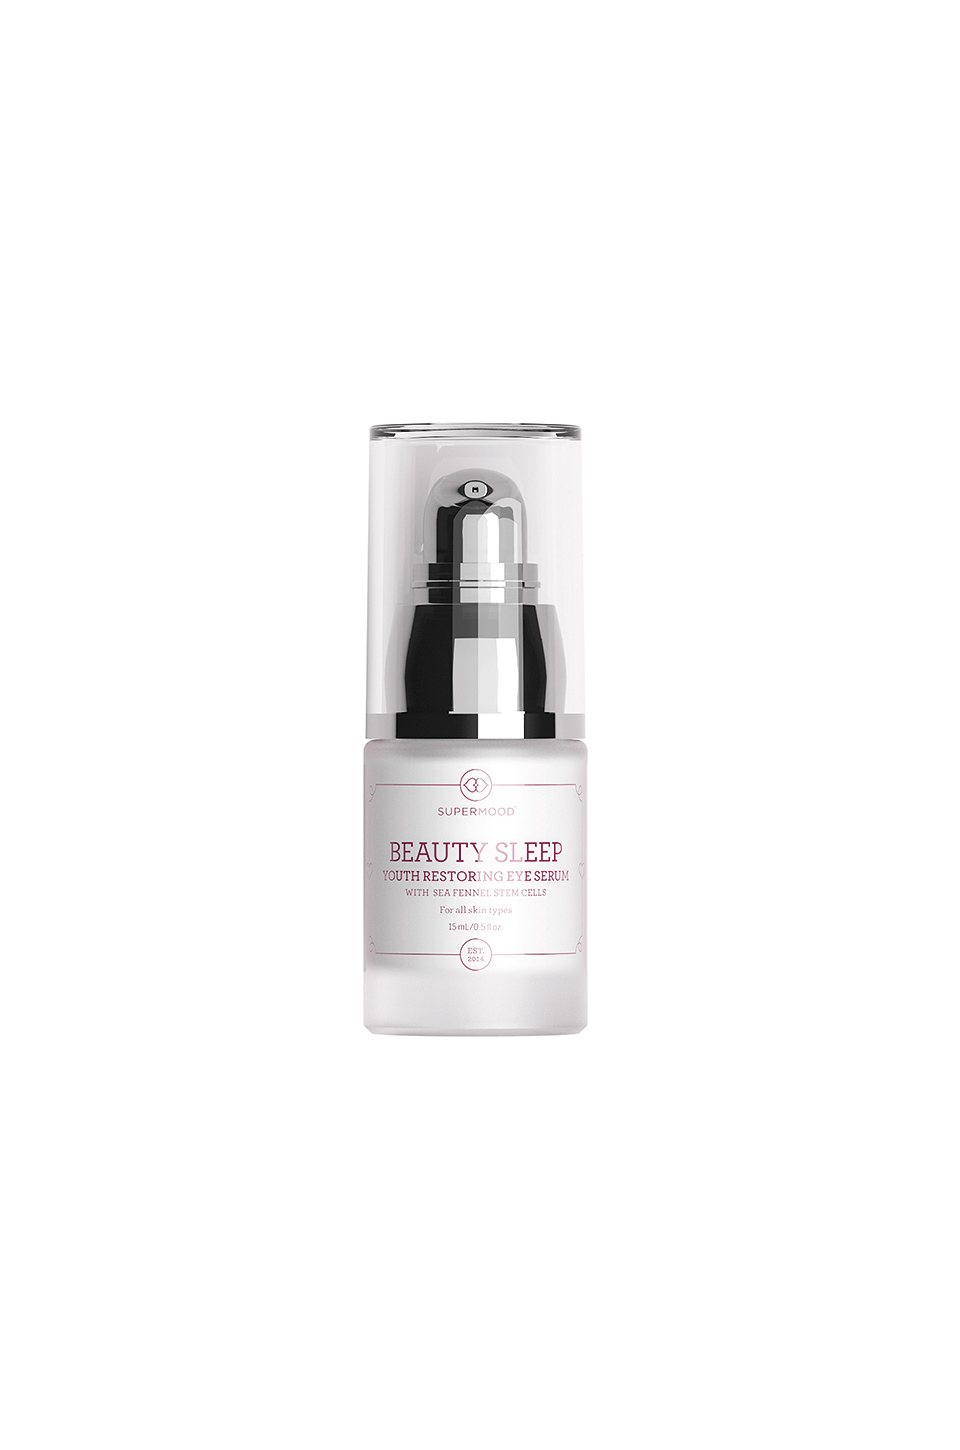 SUPERMOOD Beauty Sleep Youth Restoring Eye Serum in